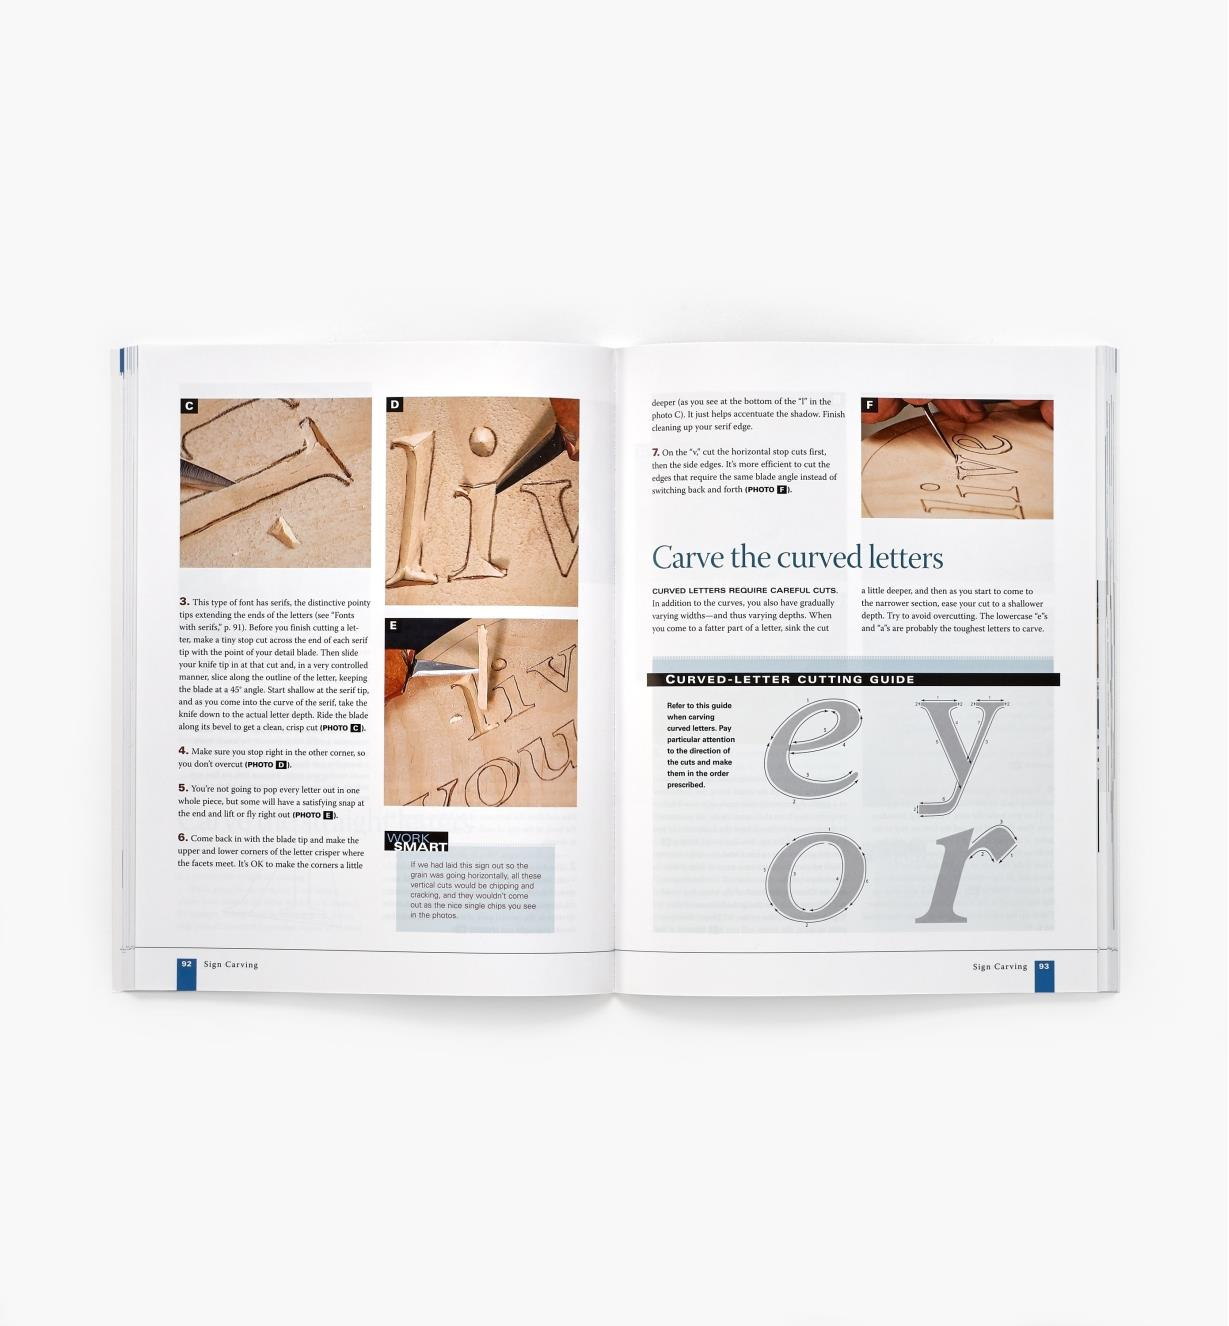 73L0422 - Wood Carving Basics - Book